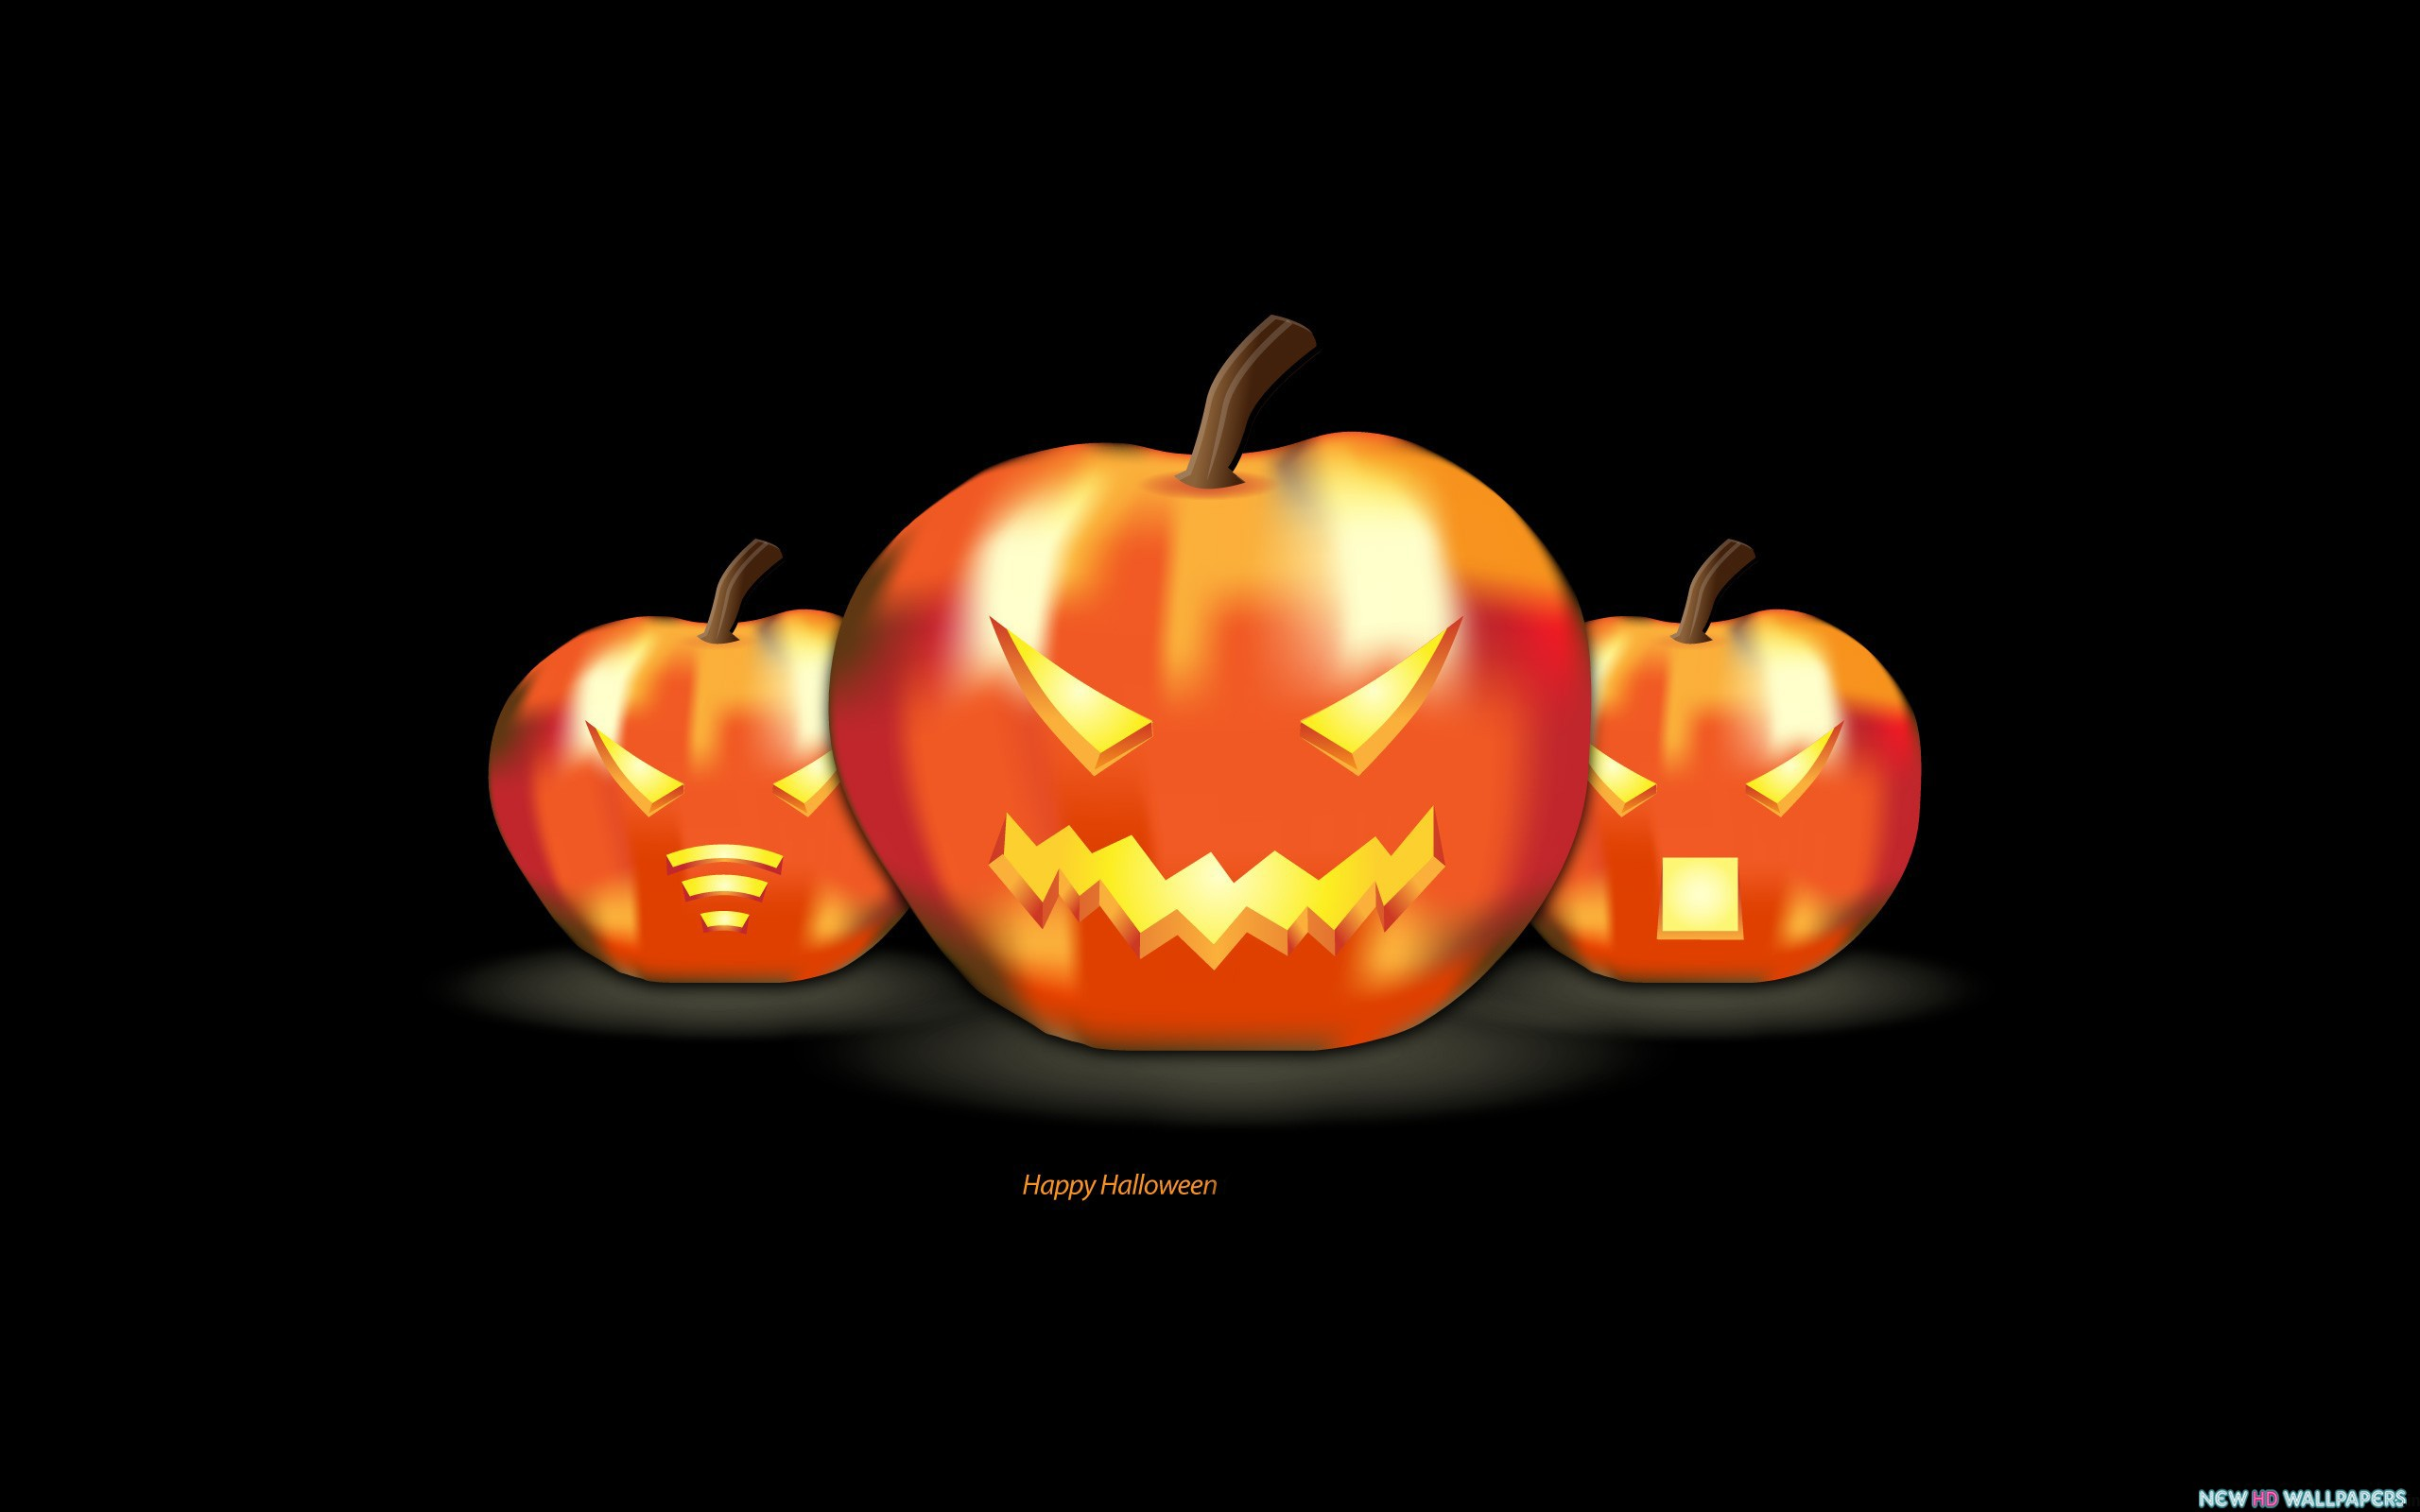 Happy-Halloween-Pumpkins-wallpaper-for-desktop